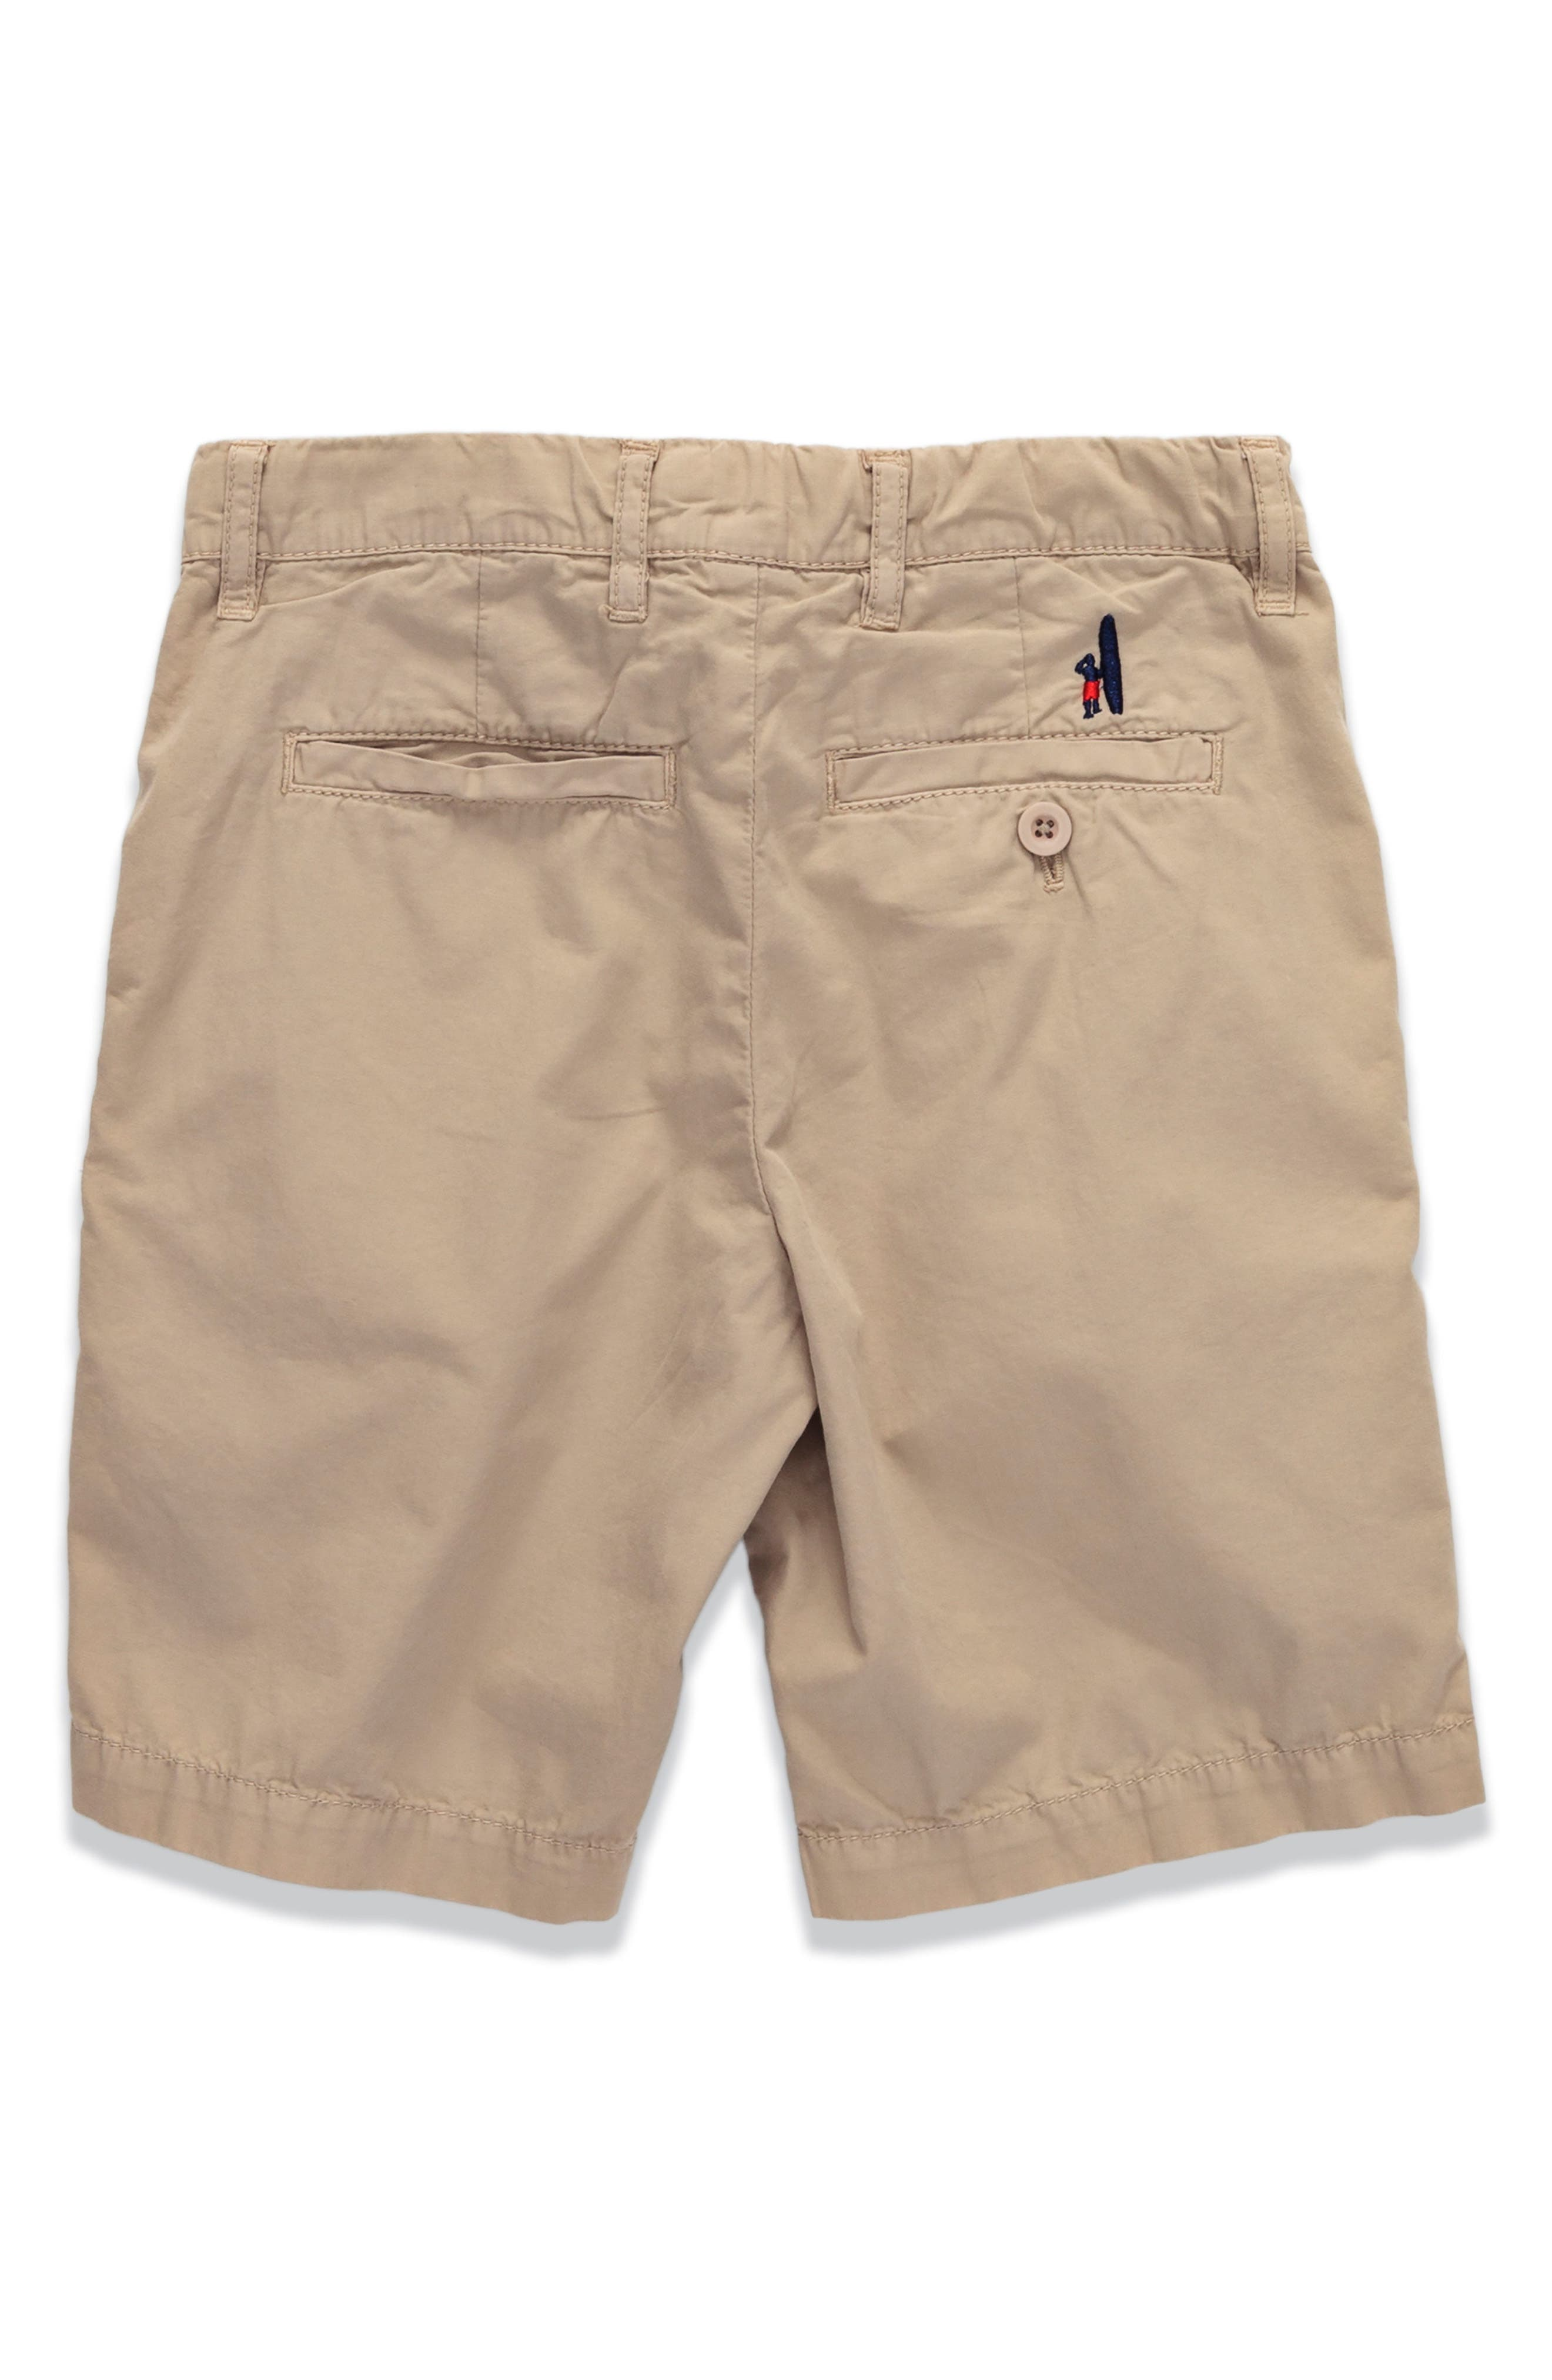 Derby Poplin Shorts,                             Main thumbnail 1, color,